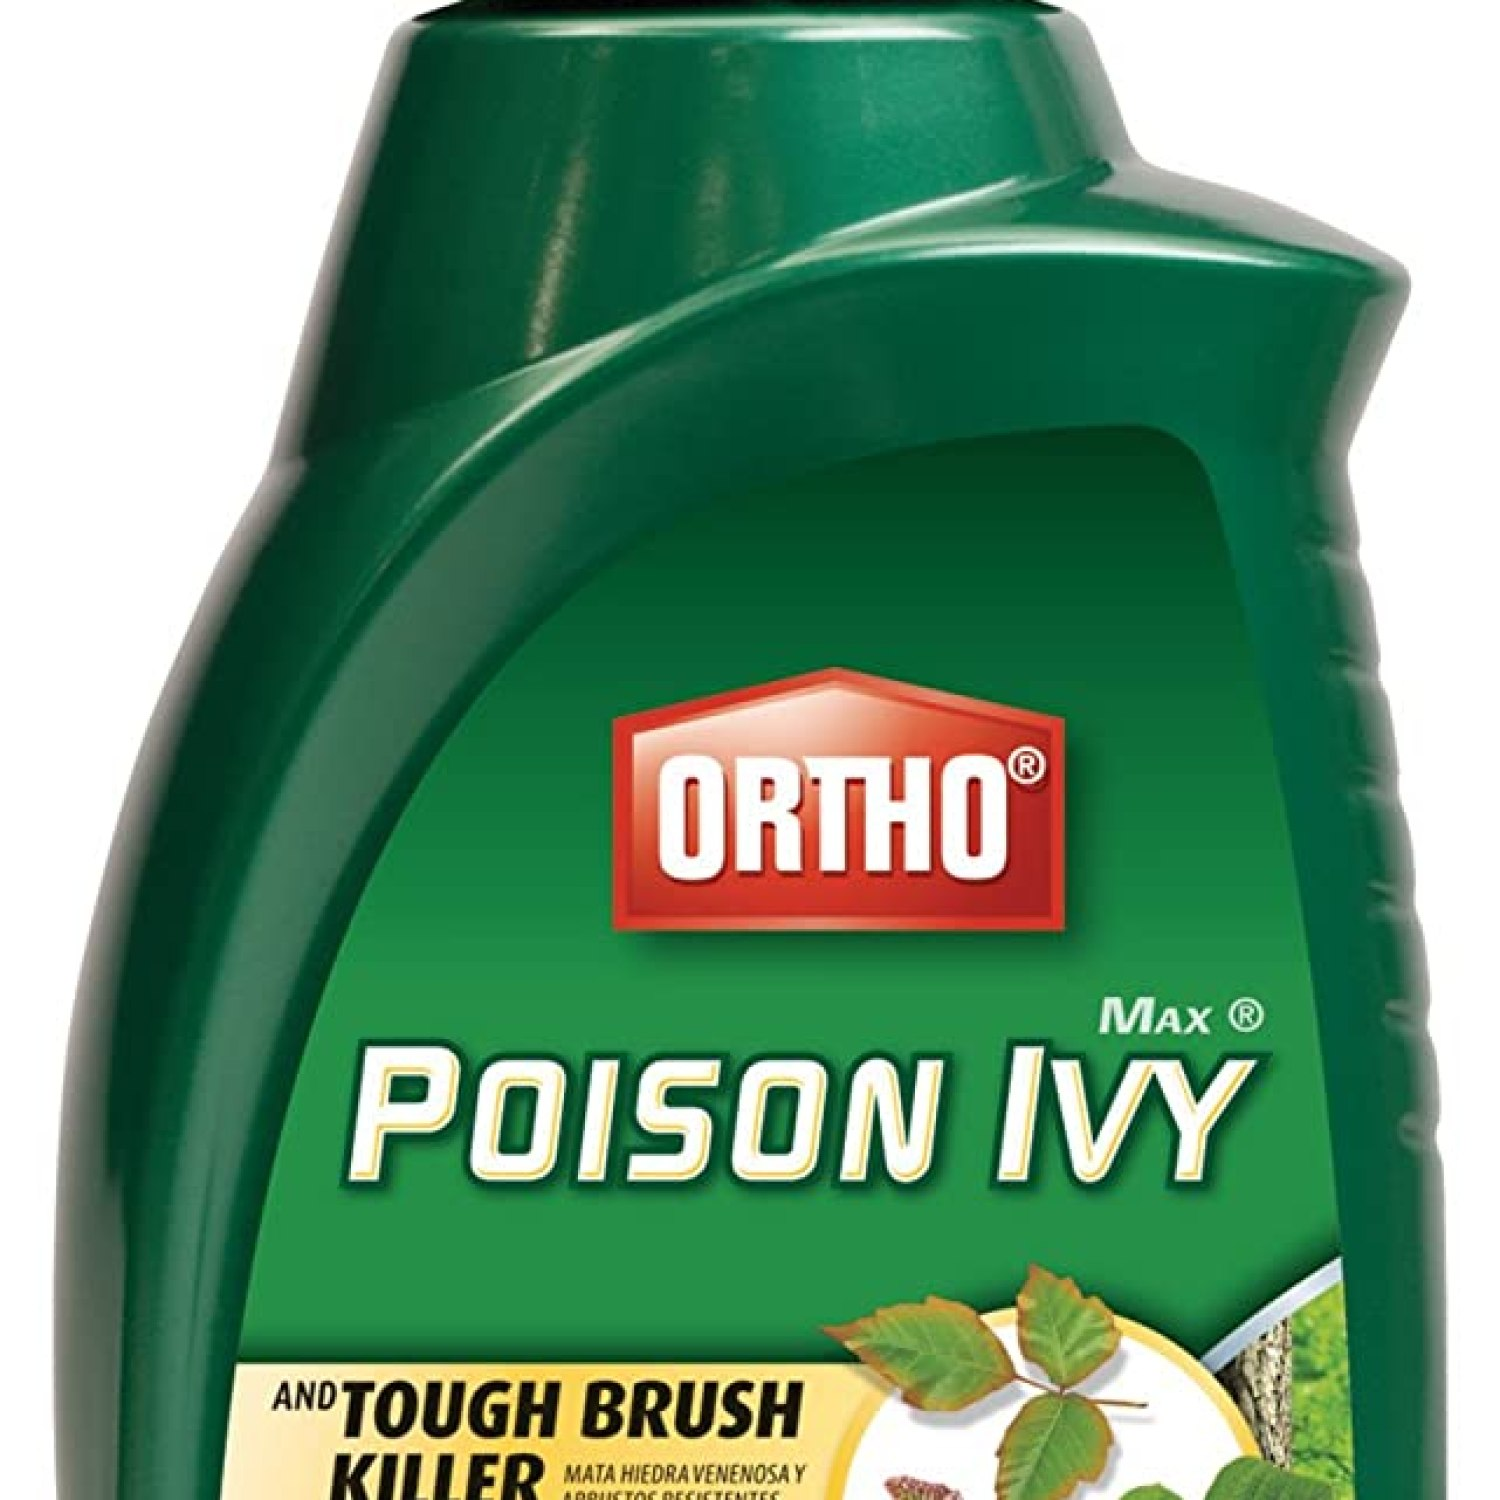 Ortho Max Poison Ivy and Tough Brush killer